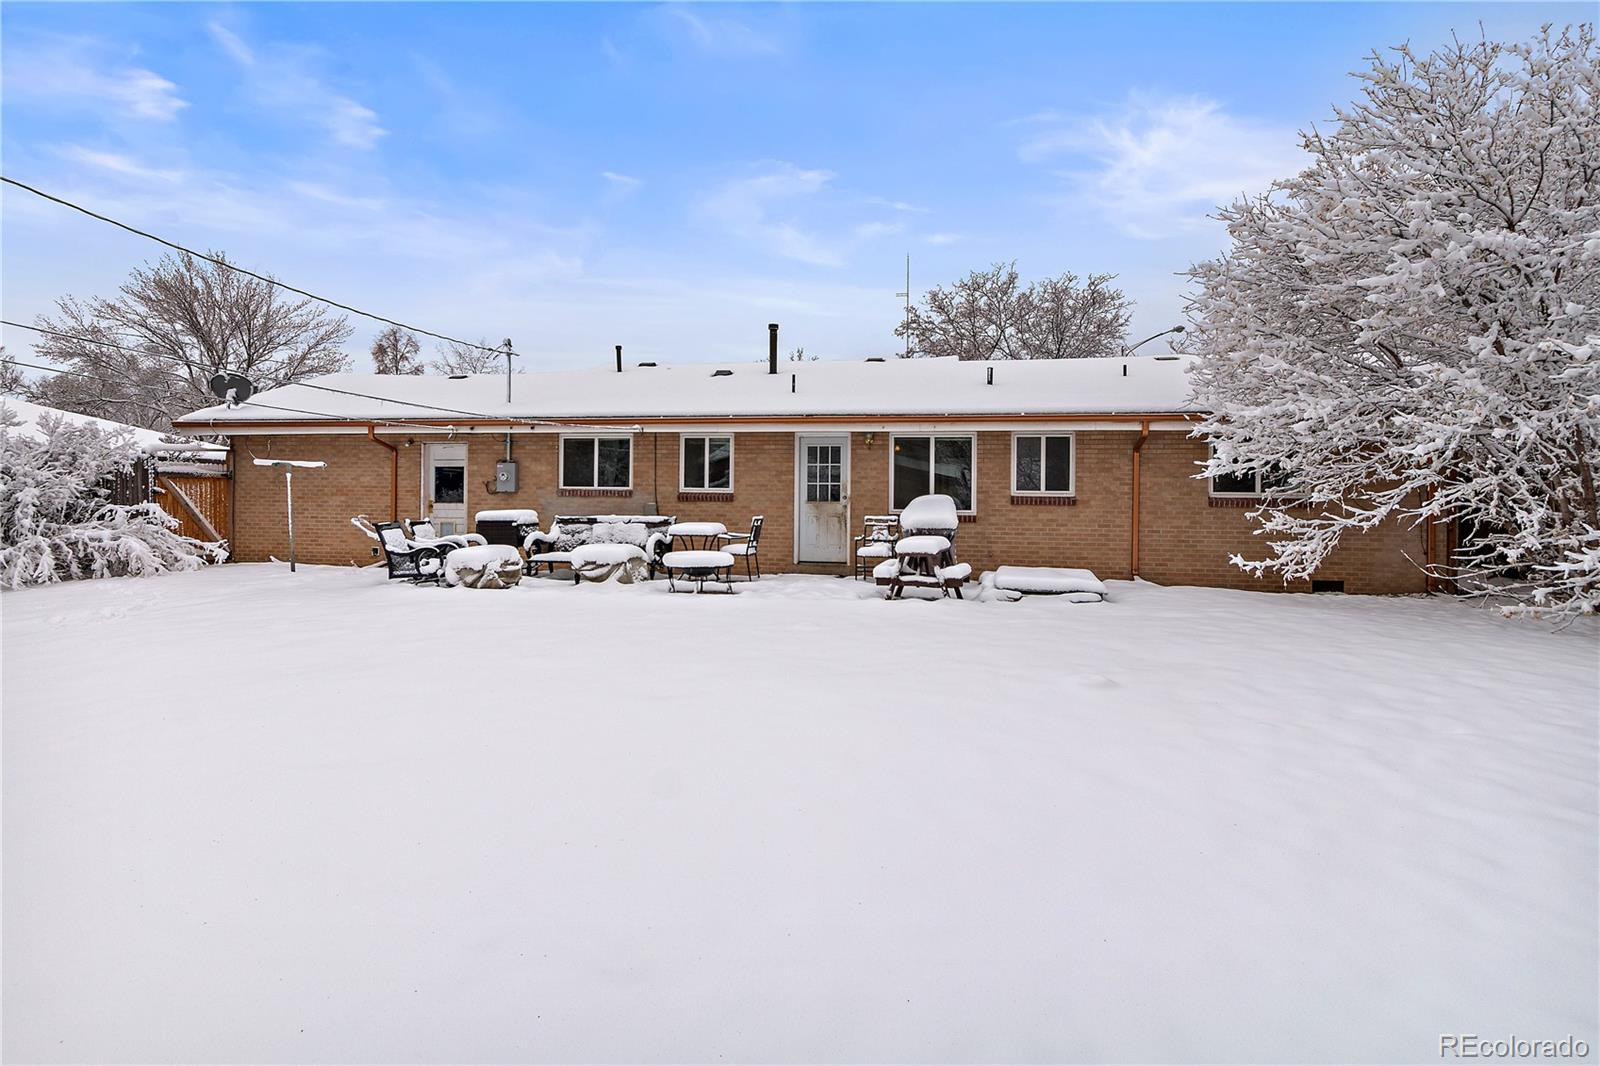 MLS# 5584211 - 22 - 8105 W 16th Place, Lakewood, CO 80214